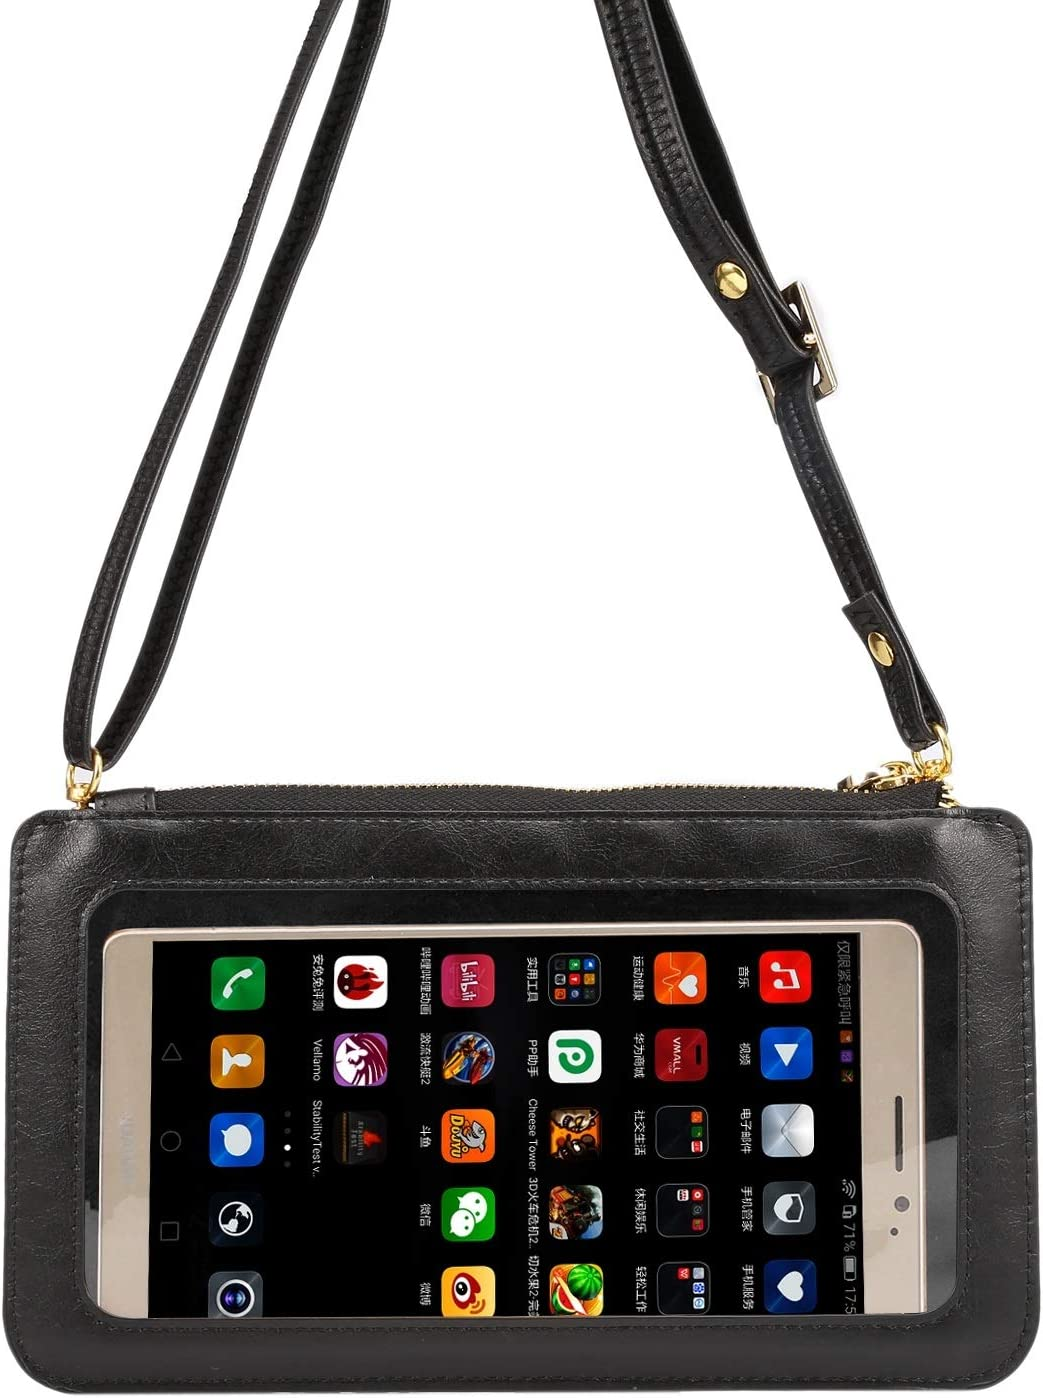 Phone Bag Touch Screen PU Leather Crossbody Bag, Universal Phone Wallet Pouch Shoulder bag for iPhone Xs Max XR X 8 7 Plus,Samsung Galaxy S8 S9 Plus Note 8, S10 Lite, s20+,s20 ultra,Note10+, Note 10